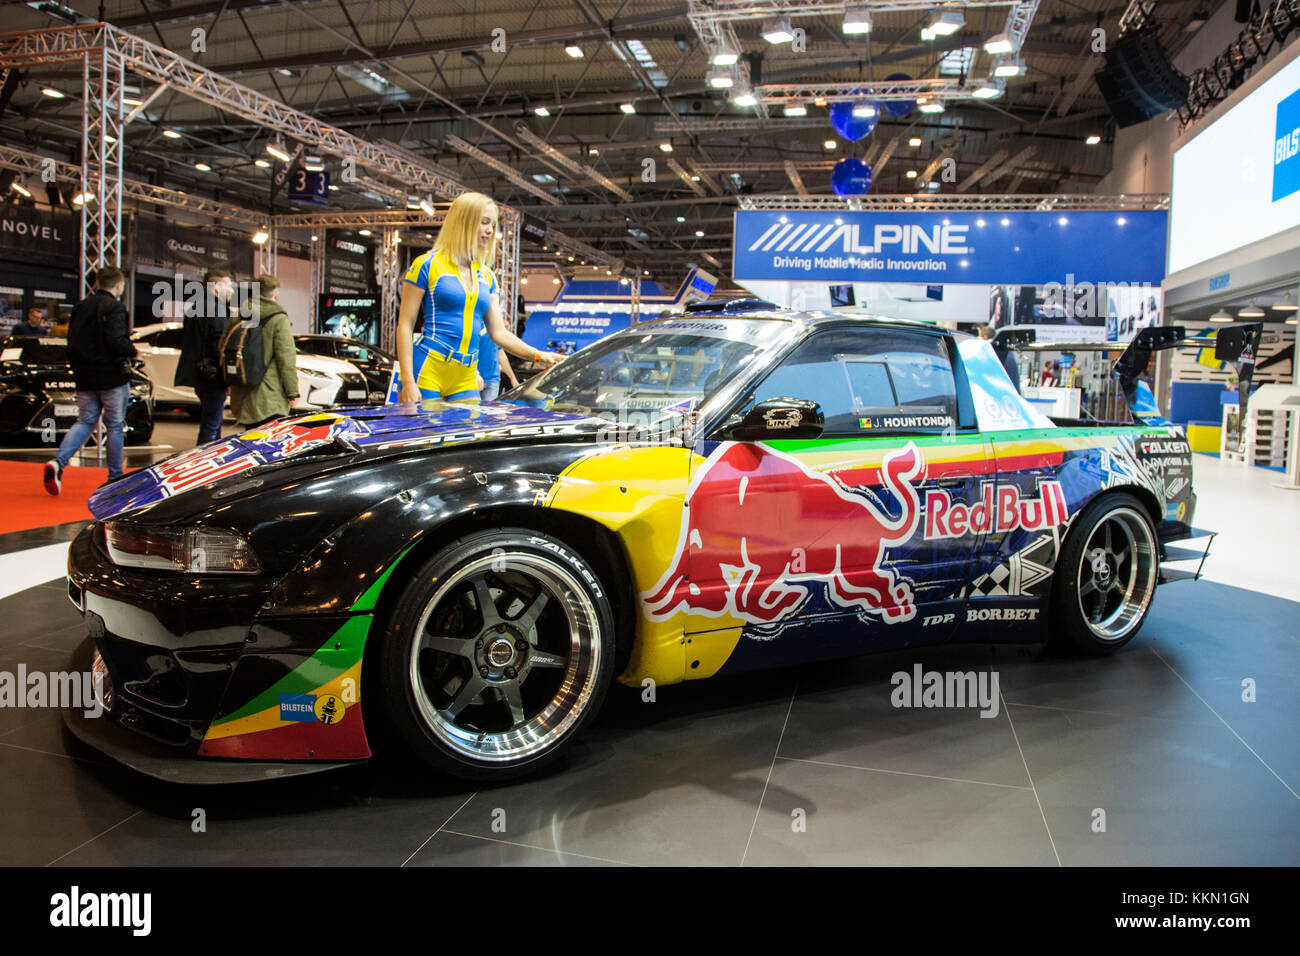 red bull racing stock photos red bull racing stock images alamy. Black Bedroom Furniture Sets. Home Design Ideas